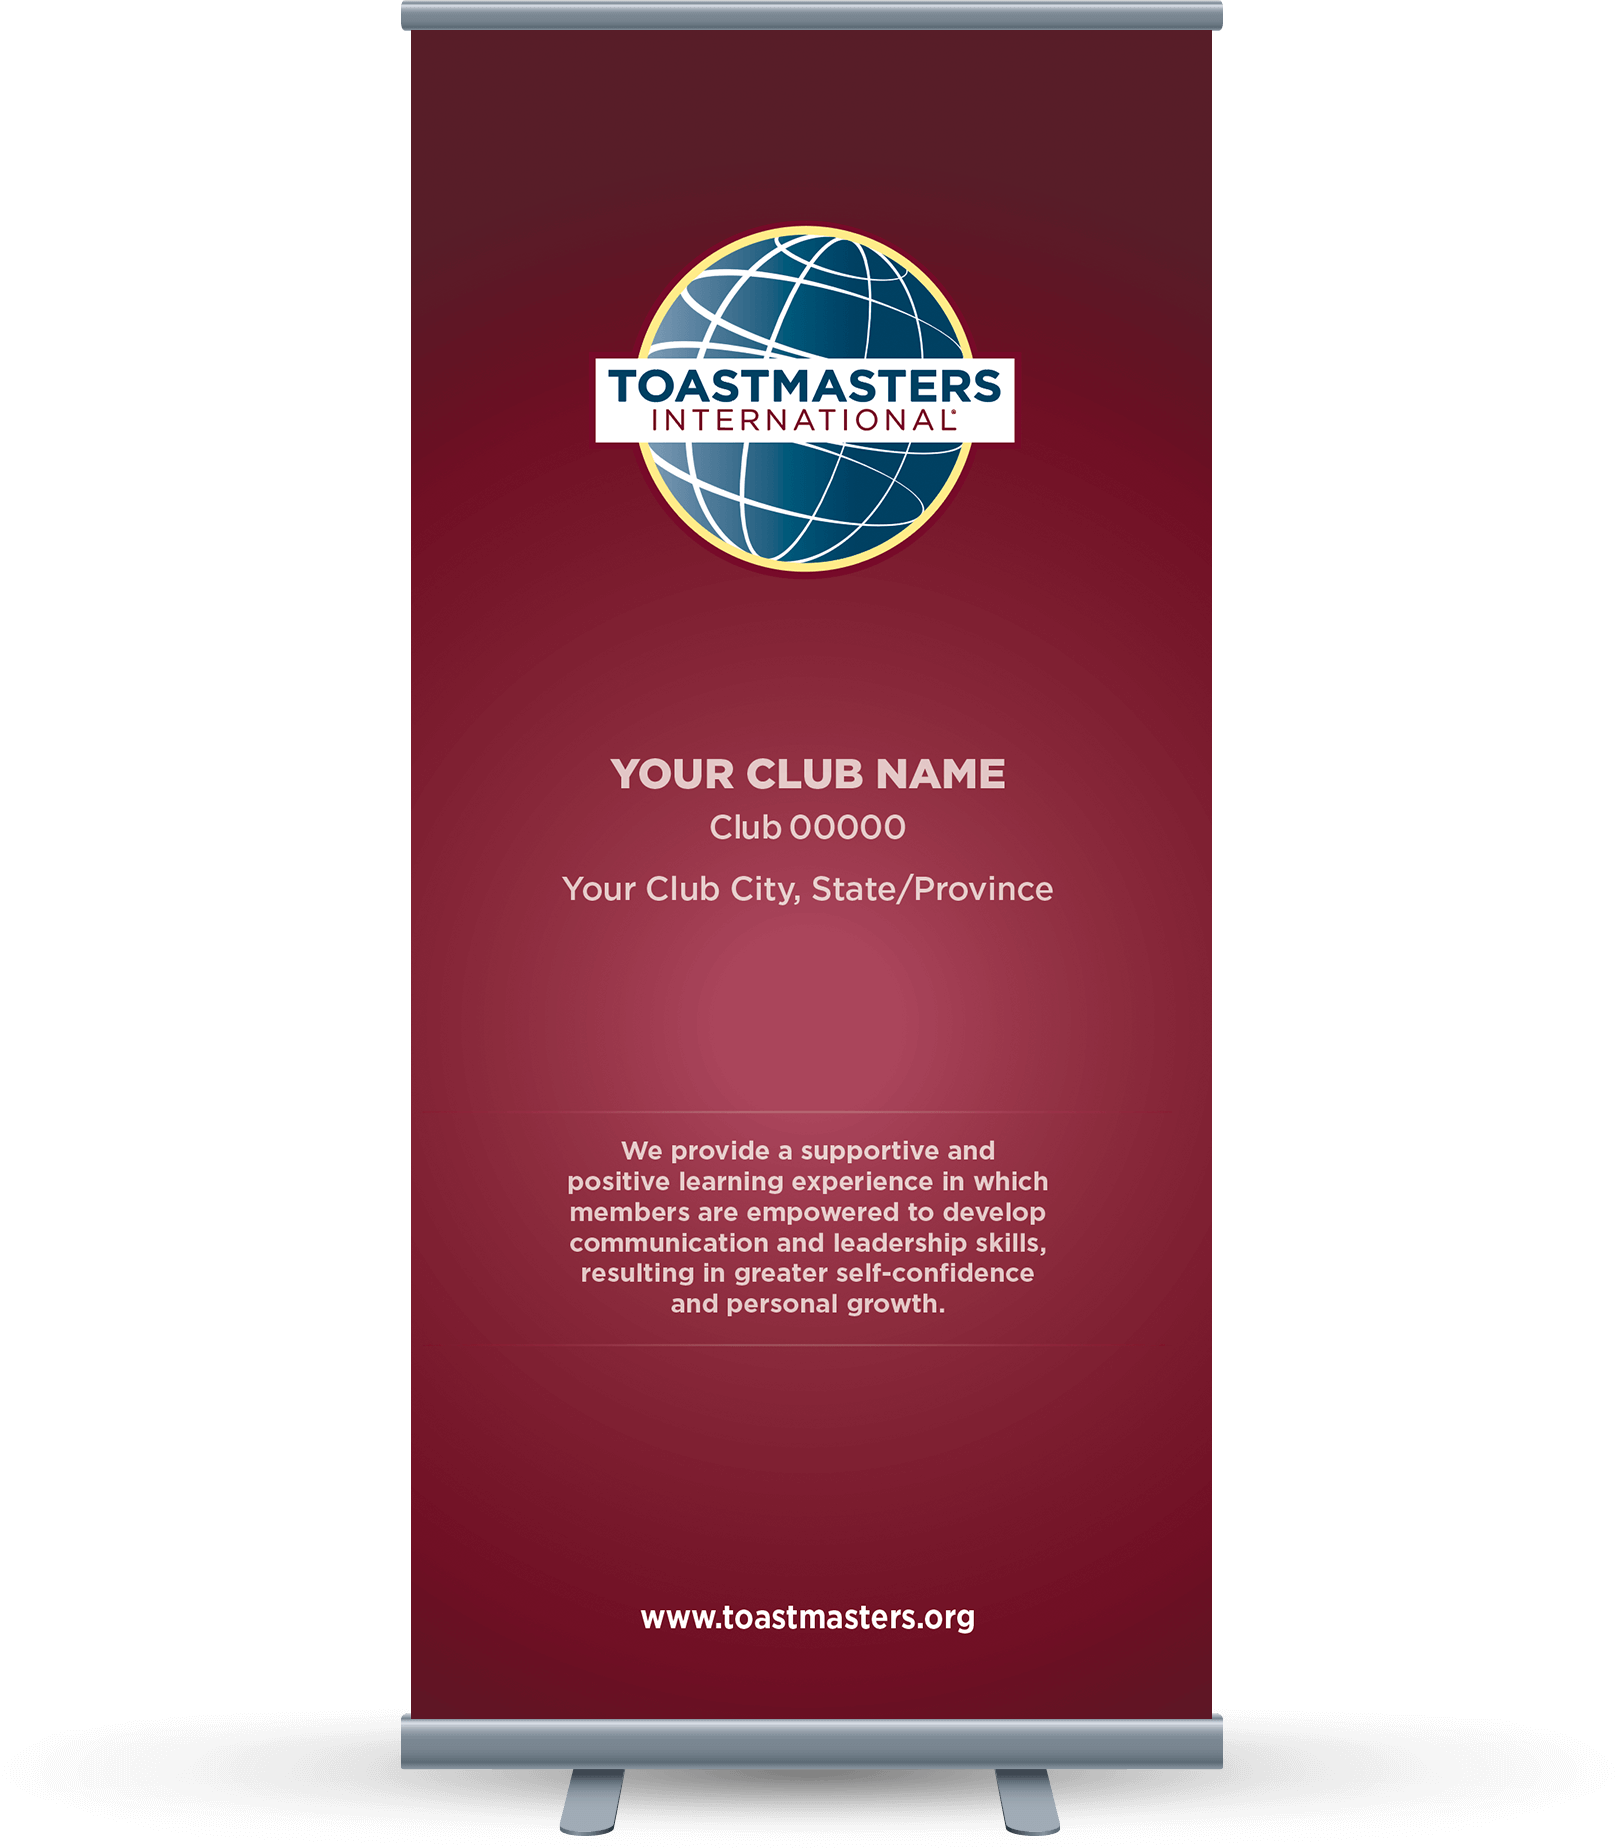 Custom Club Banner with burgundy background, globe logo and club mission statement